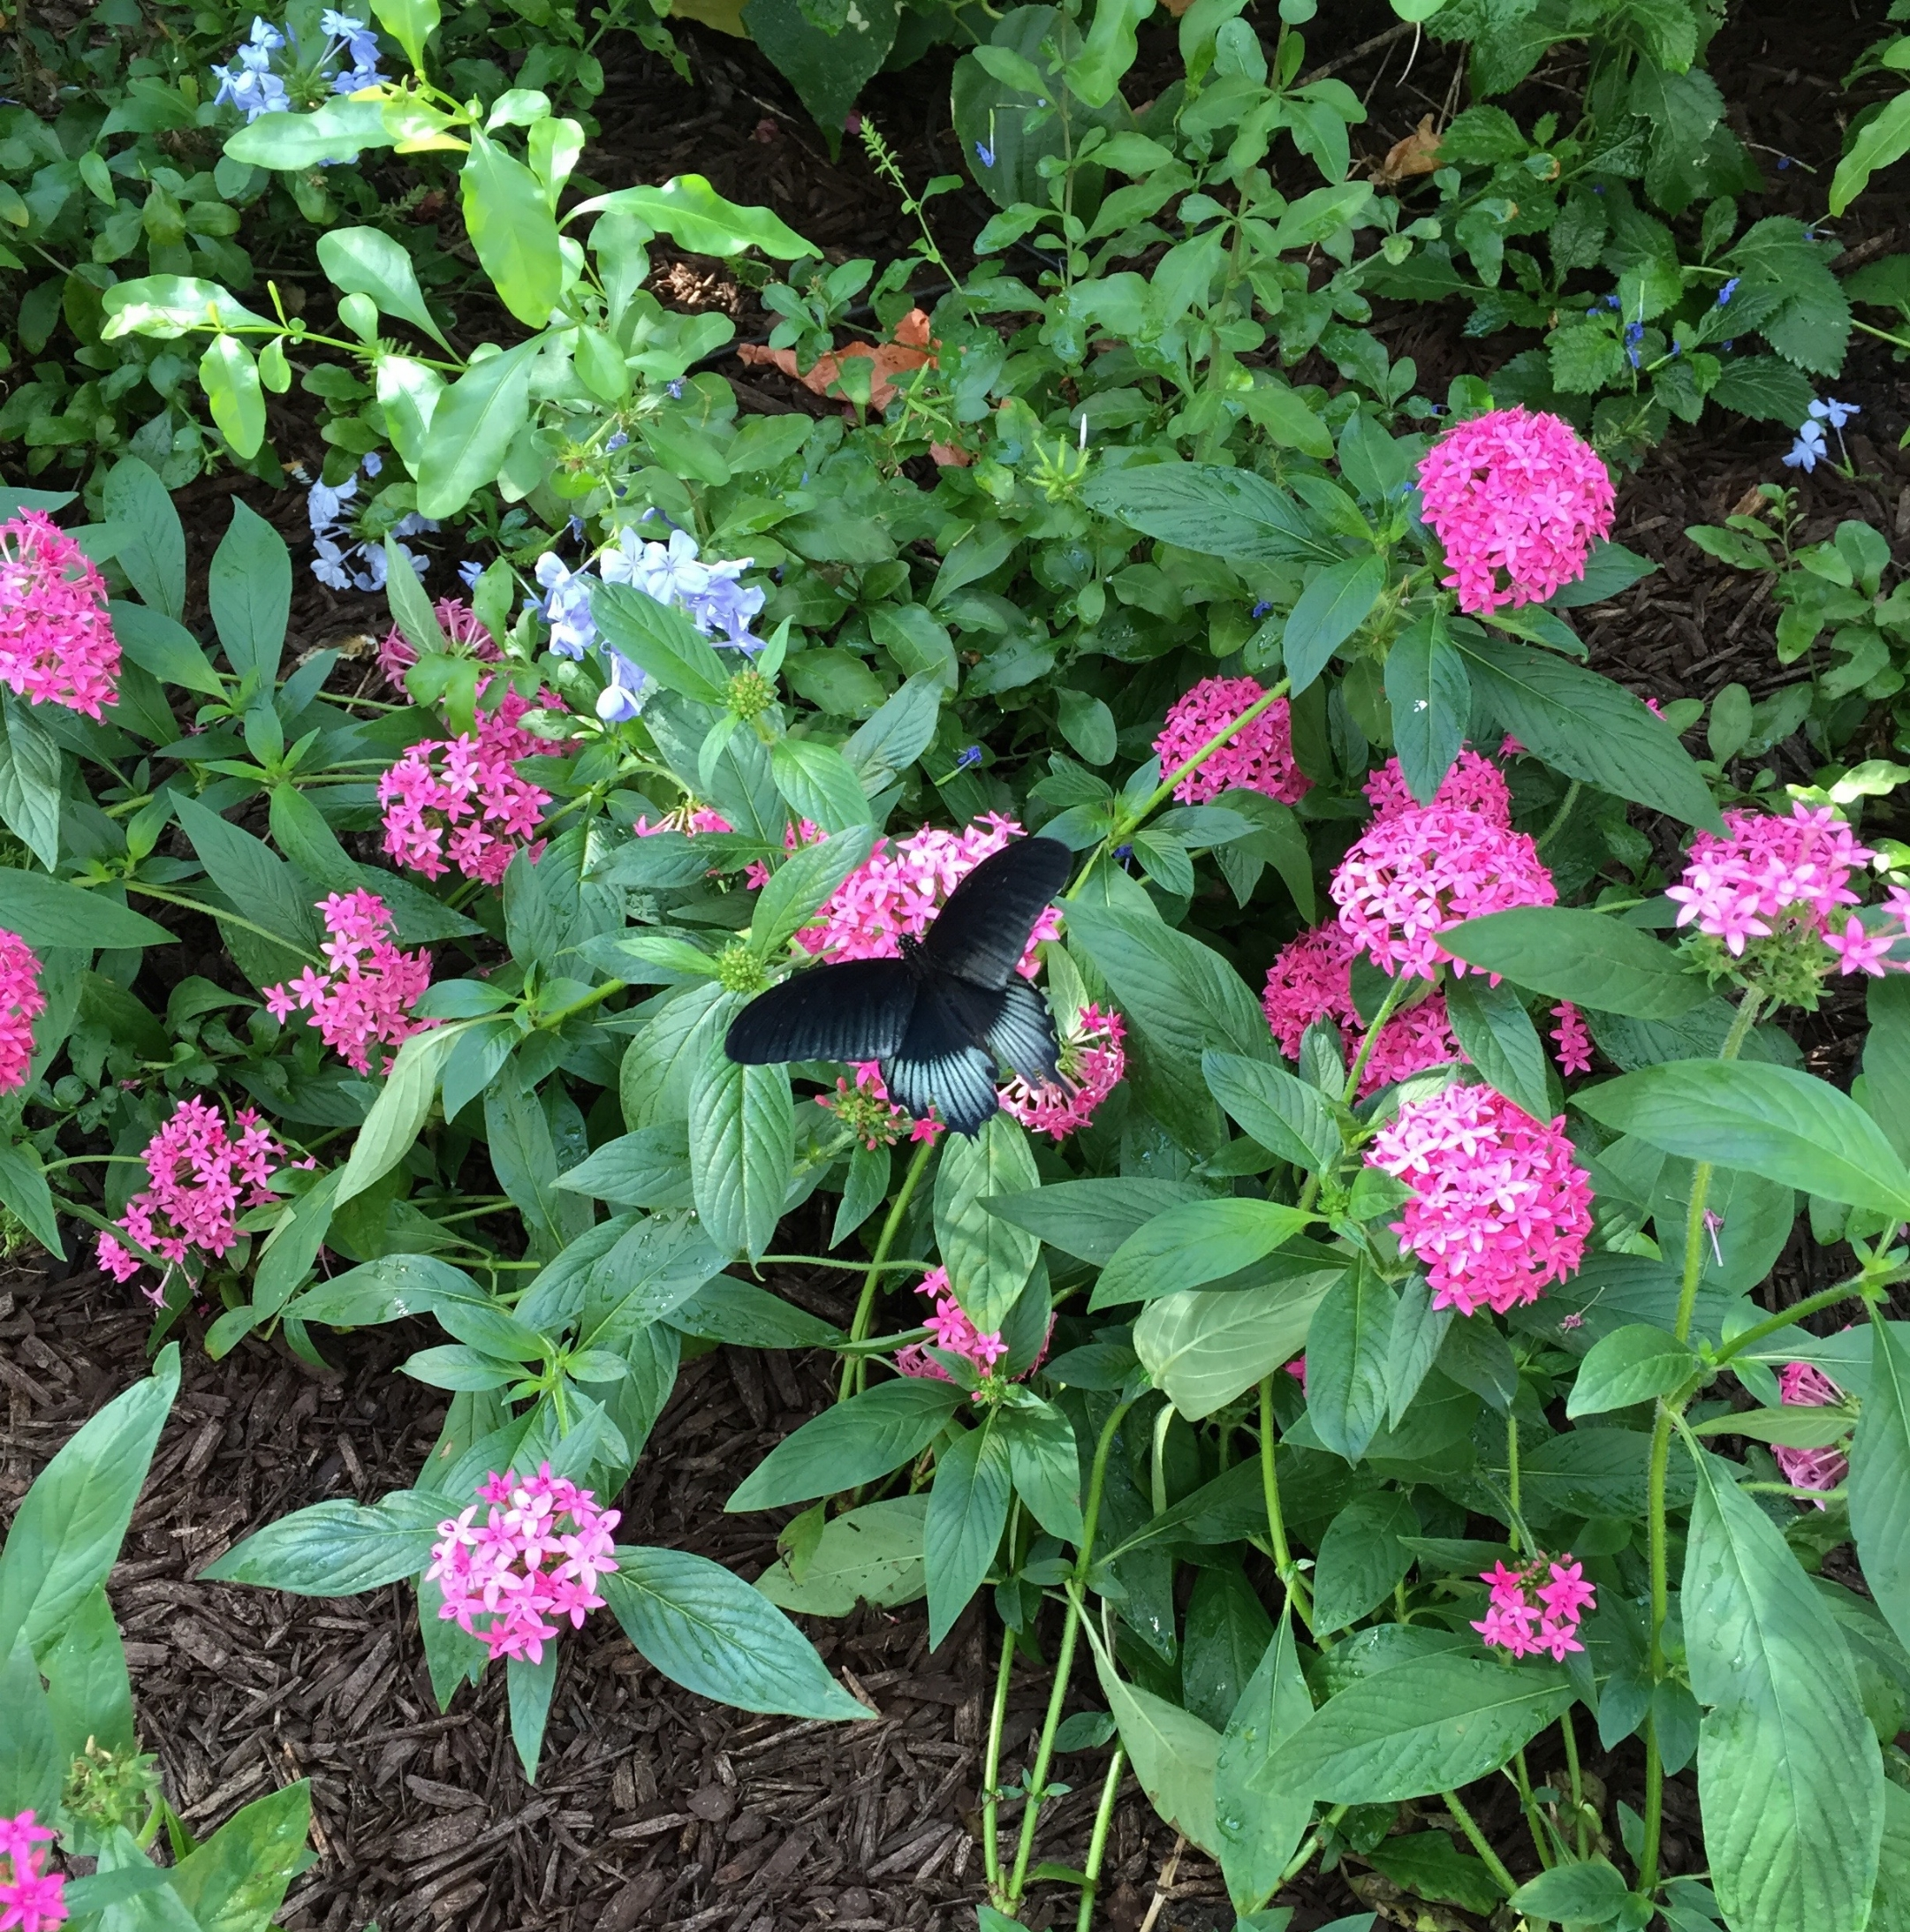 butterfly-on-flowers.jpg